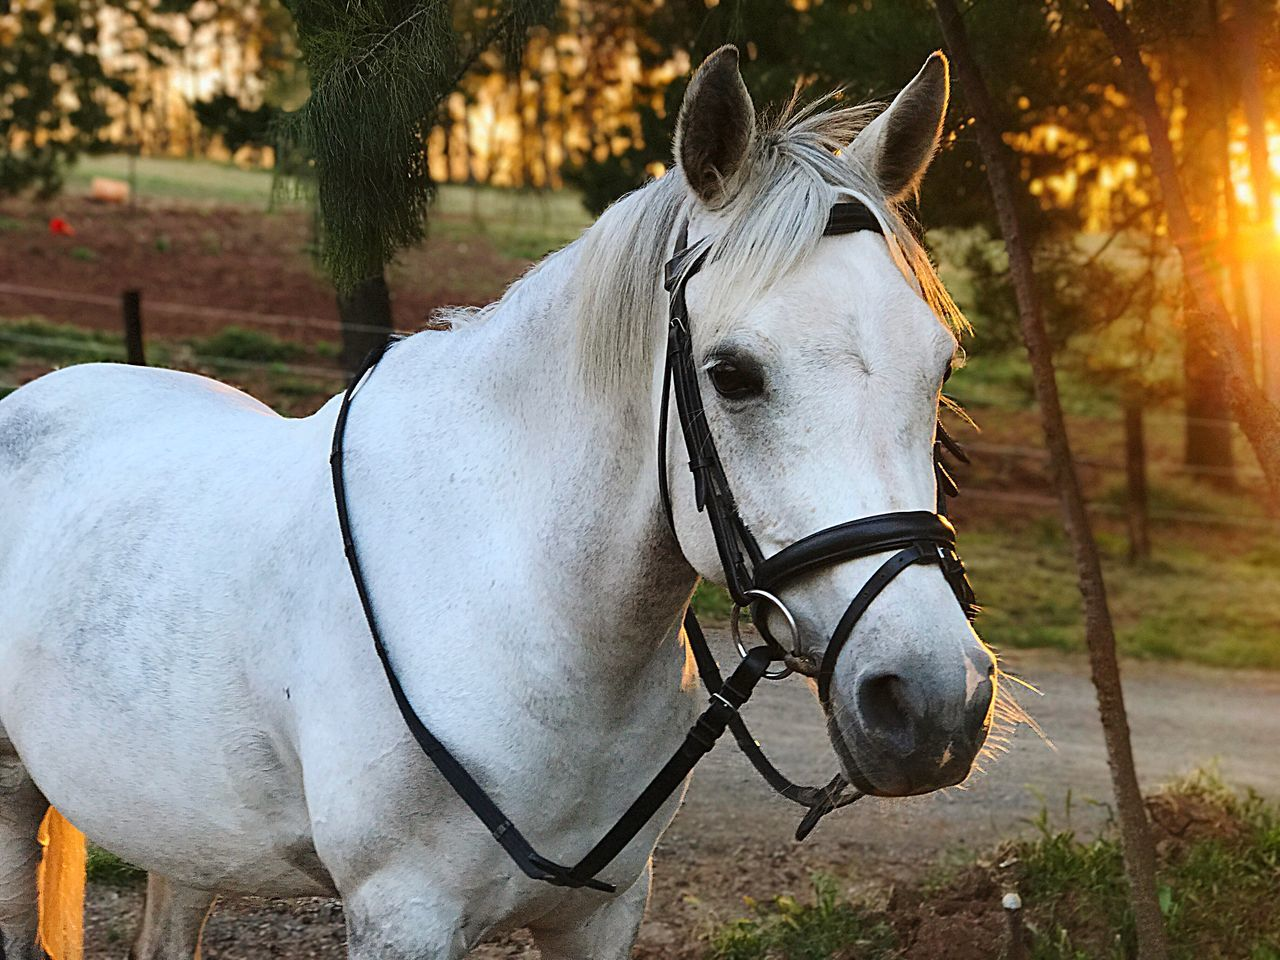 horse, one animal, domestic animals, animal themes, mammal, outdoors, tree, no people, day, horse cart, close-up, nature, grass